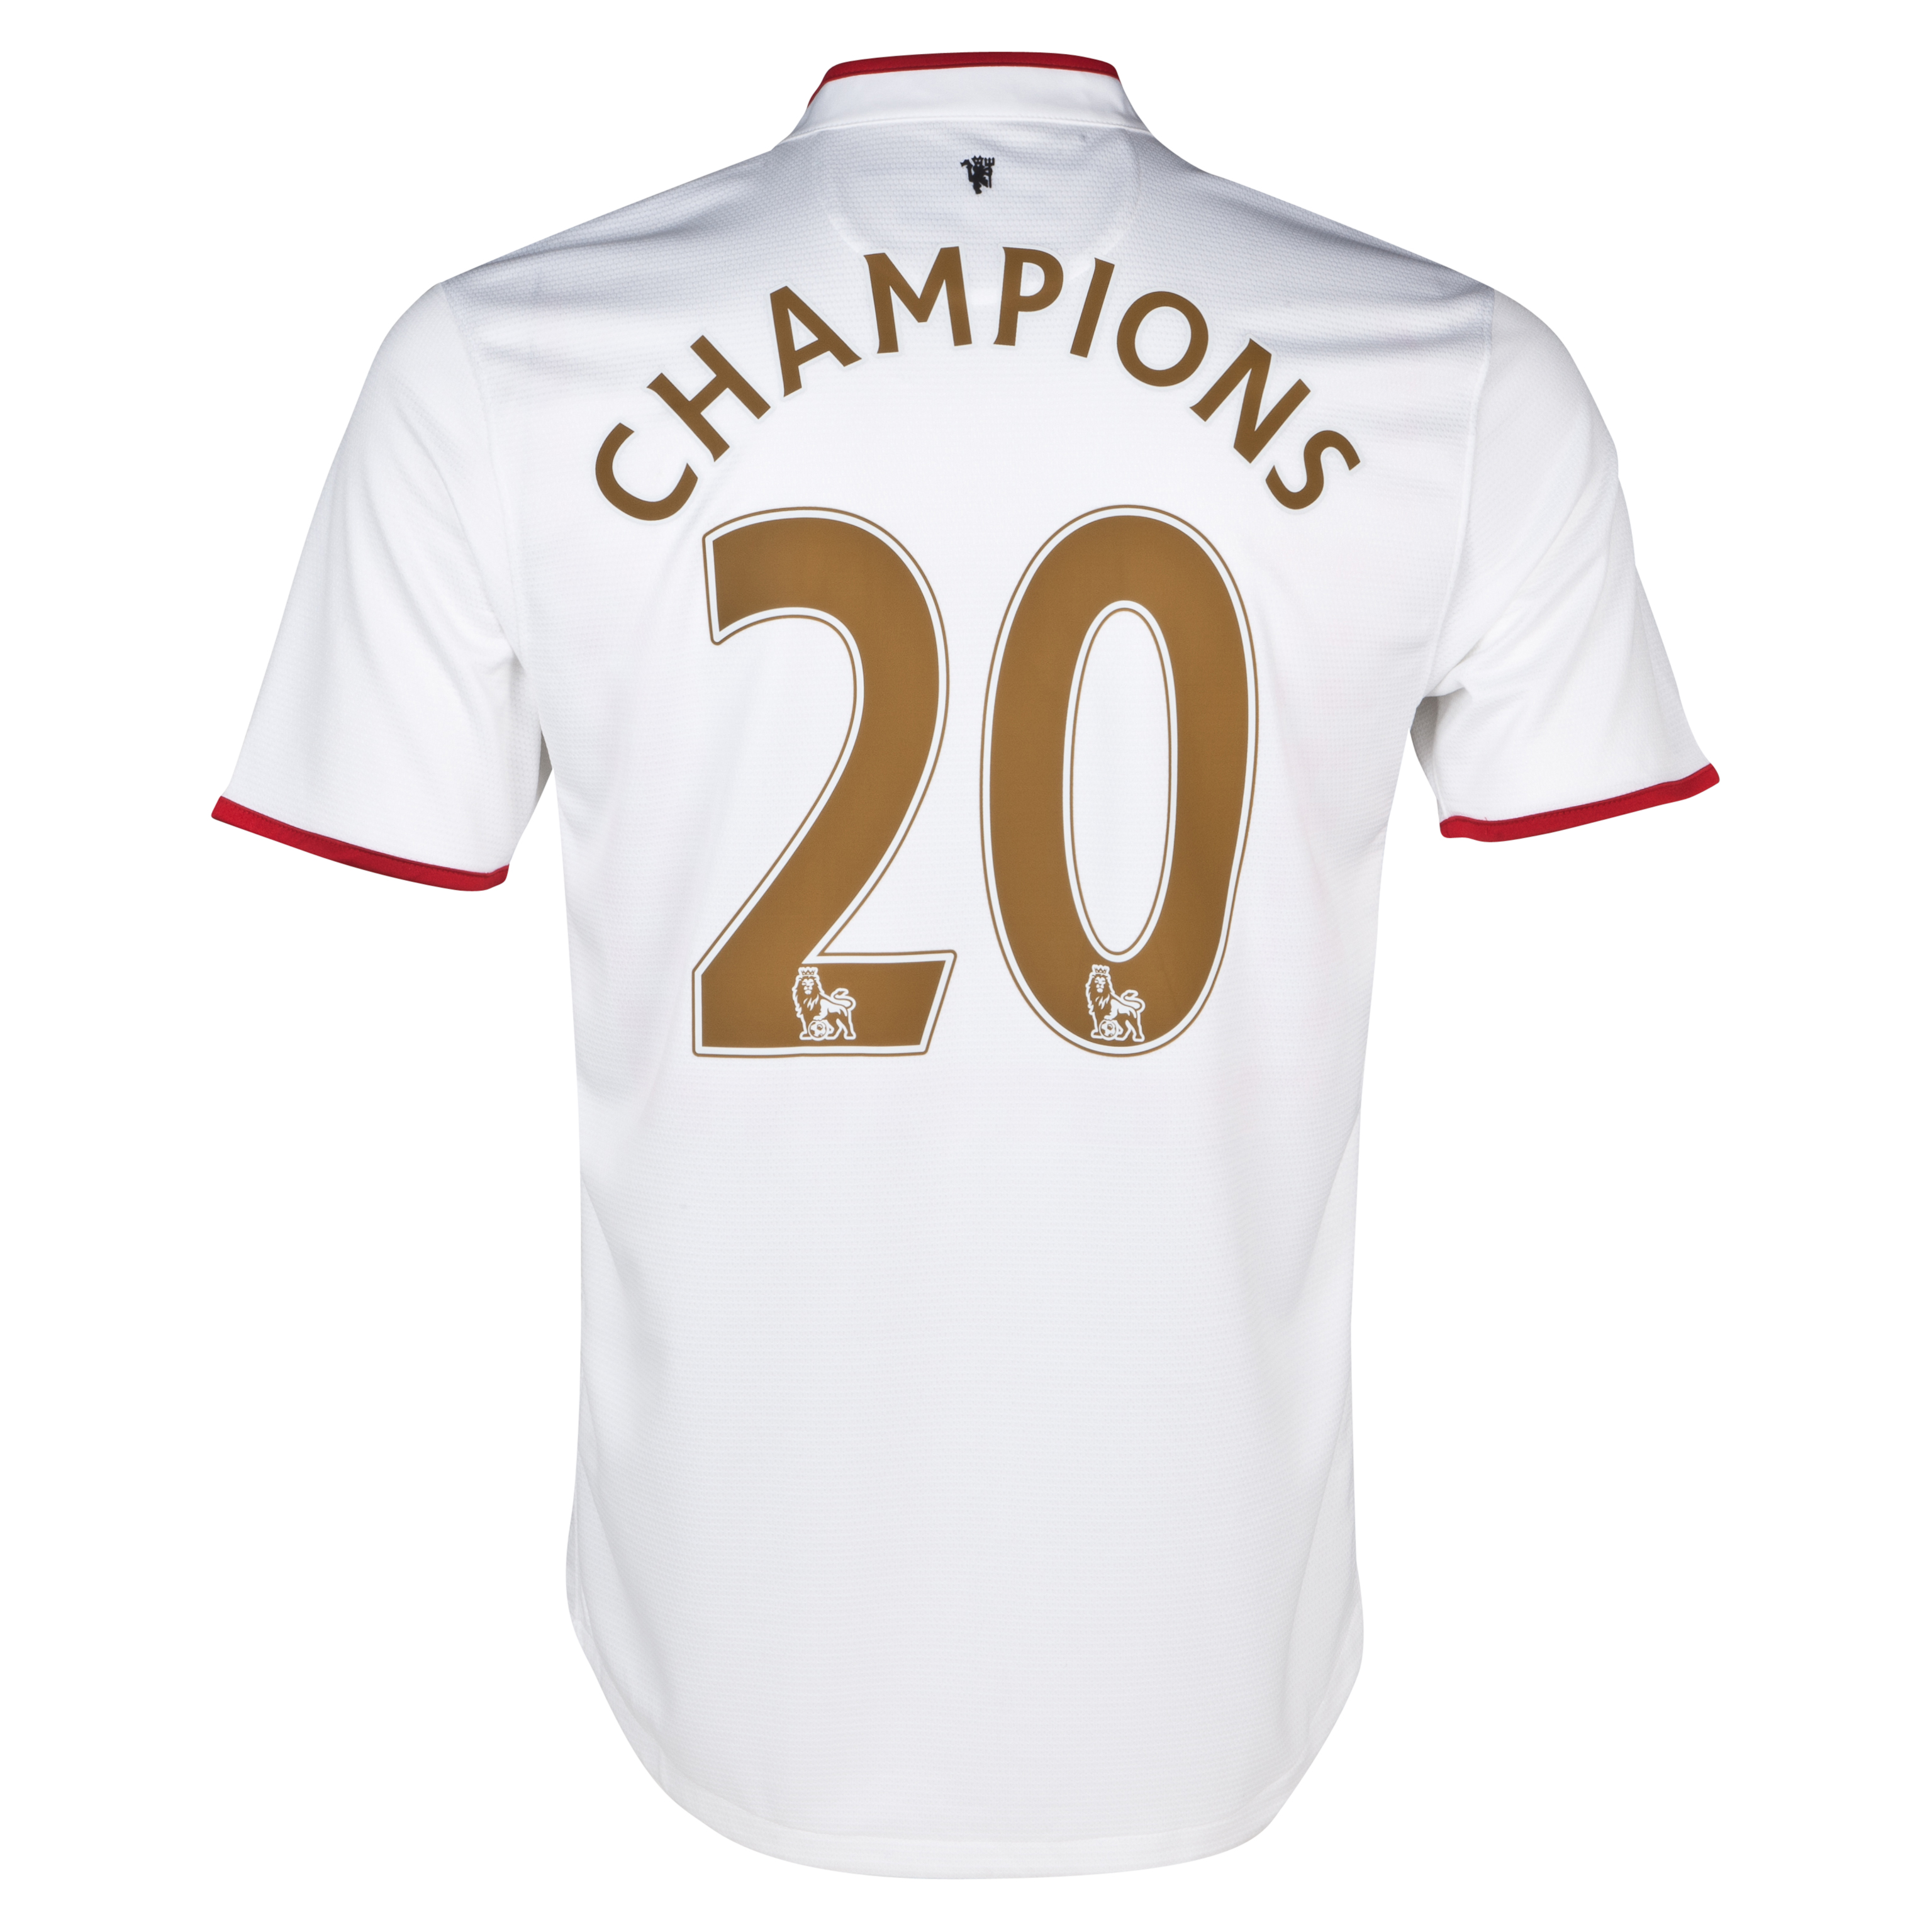 Manchester United Away Shirt 2012/13 with Champions 20 printing